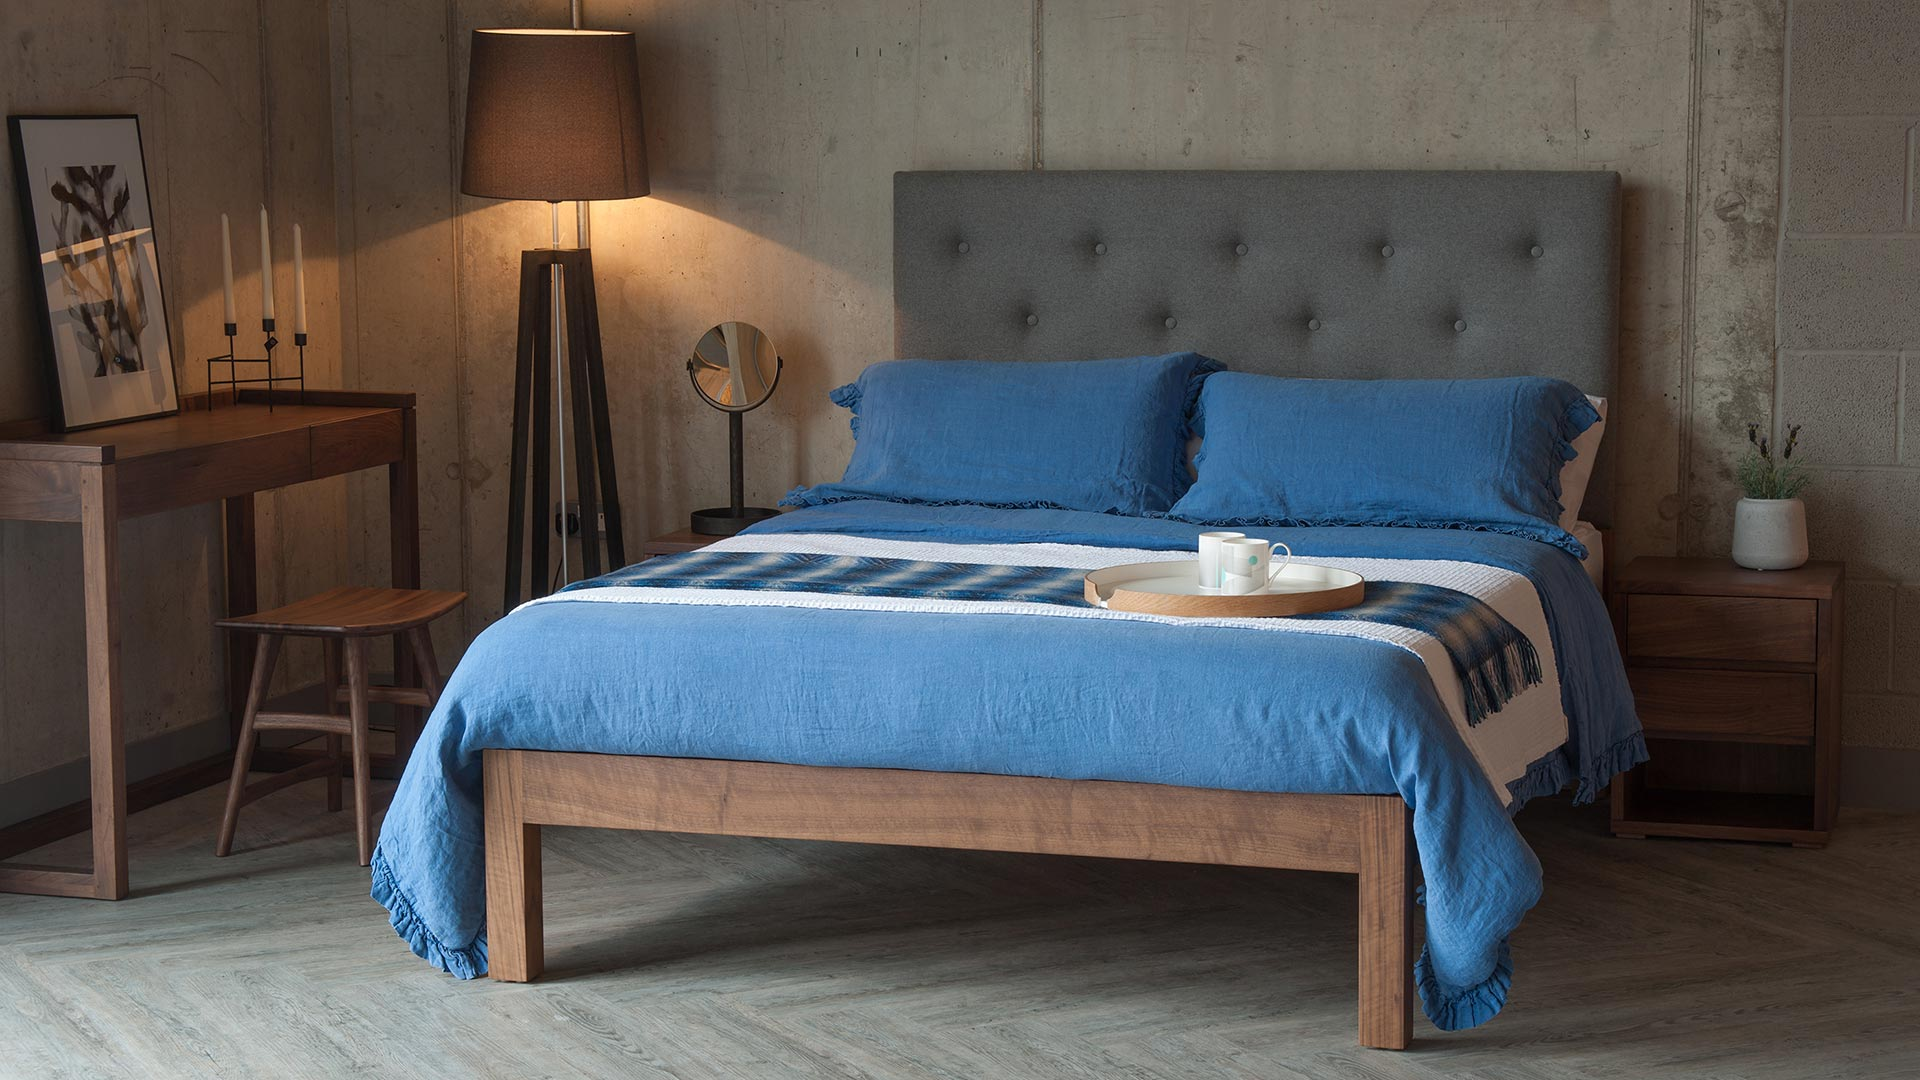 Skye bed with tall buttoned headboard & blue linen bedding